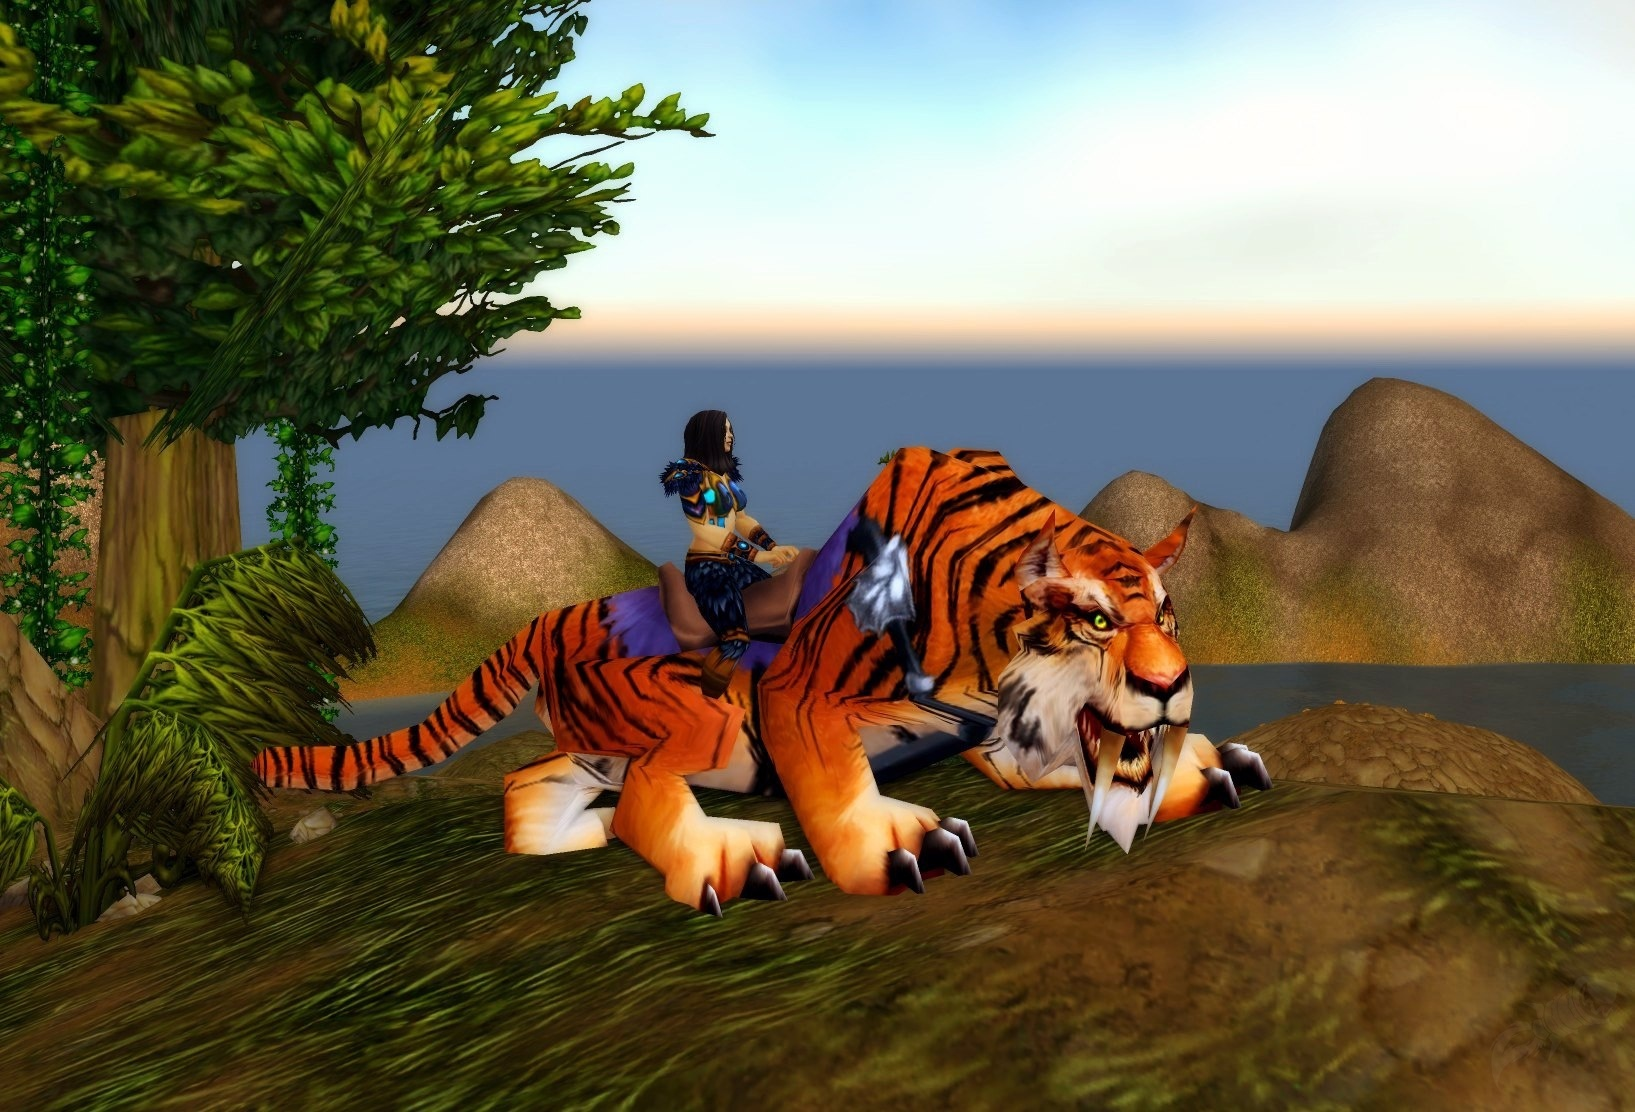 Bengal tiger in wow classic